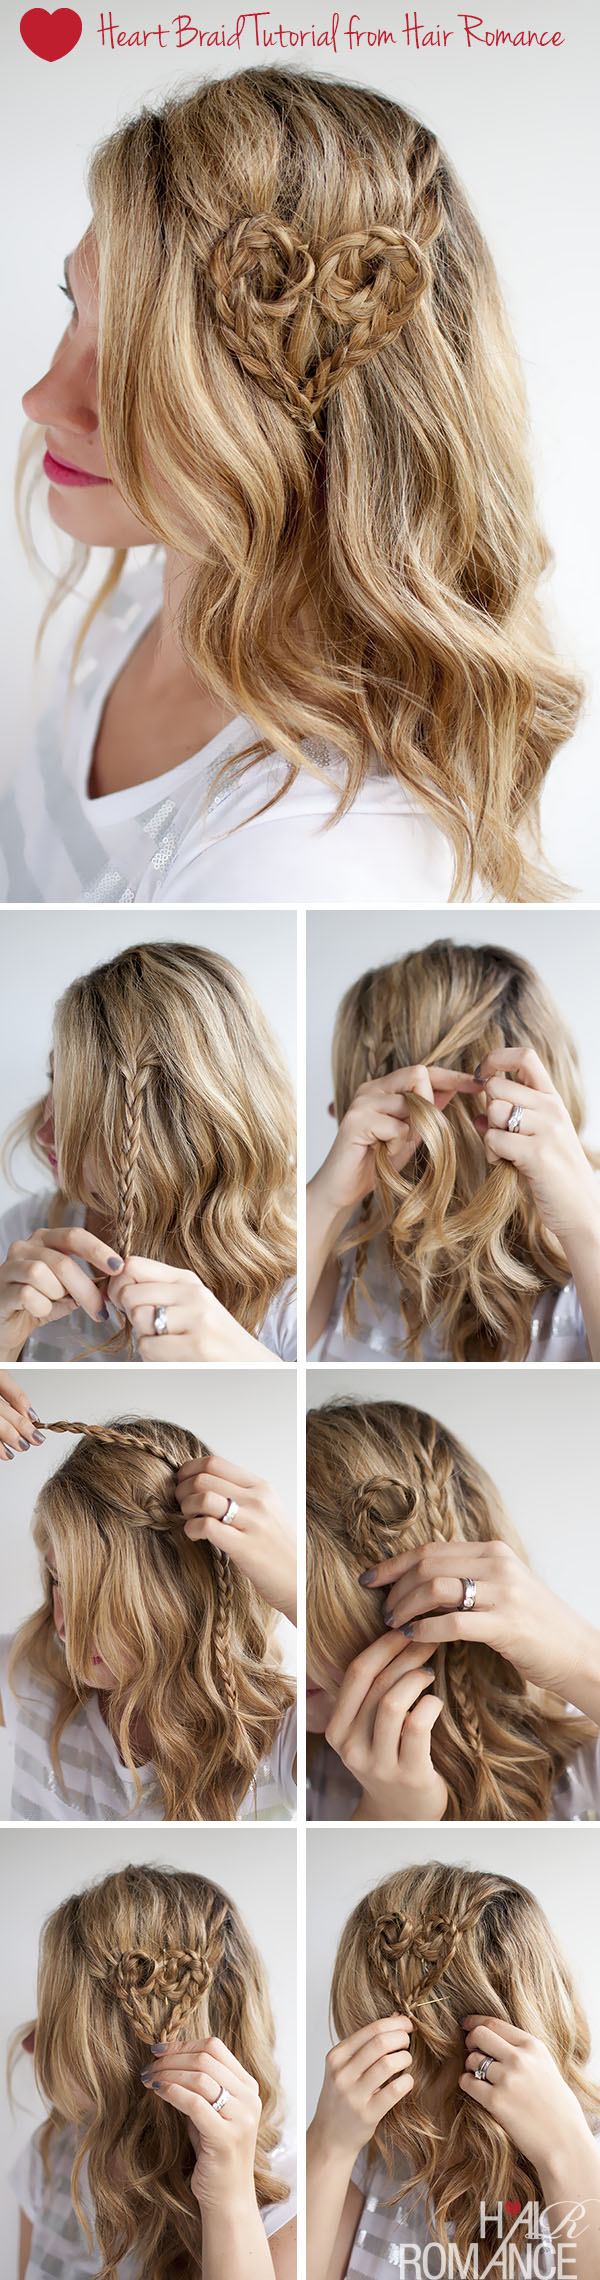 hairstyles_new_year27